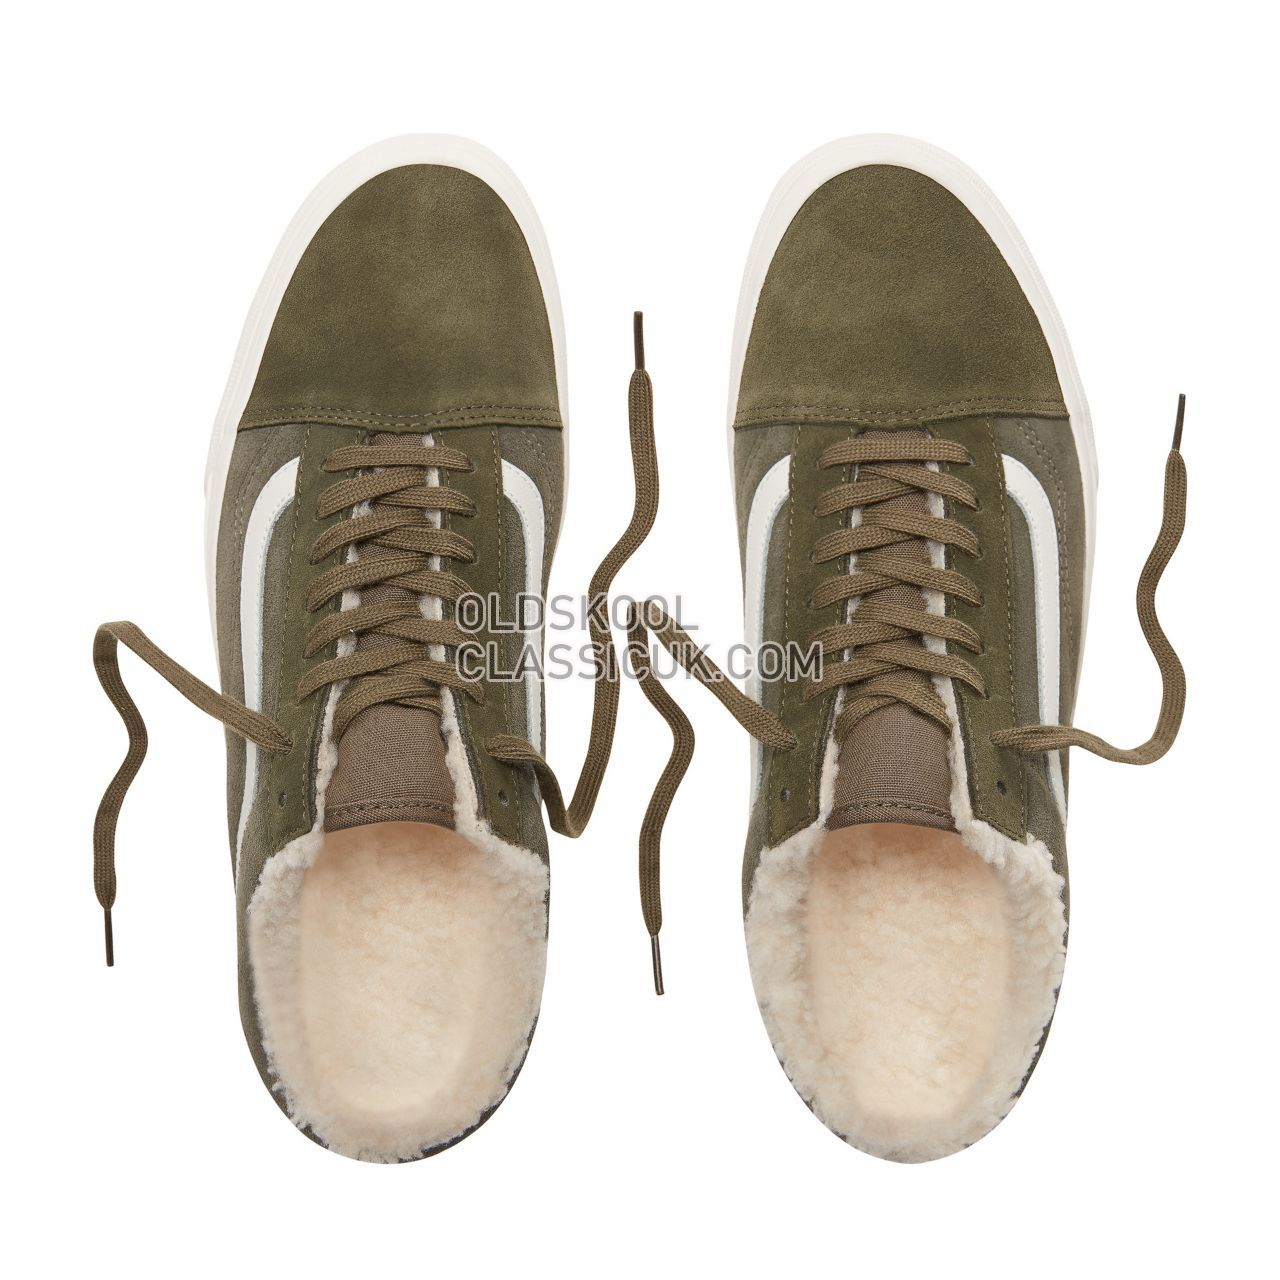 Vans Suede and Sherpa Old Skool Sneakers Mens Womens Unisex (Suede/Sherpa) Grape Leaf/Dusty Olive VN0A38G1ULZ Shoes